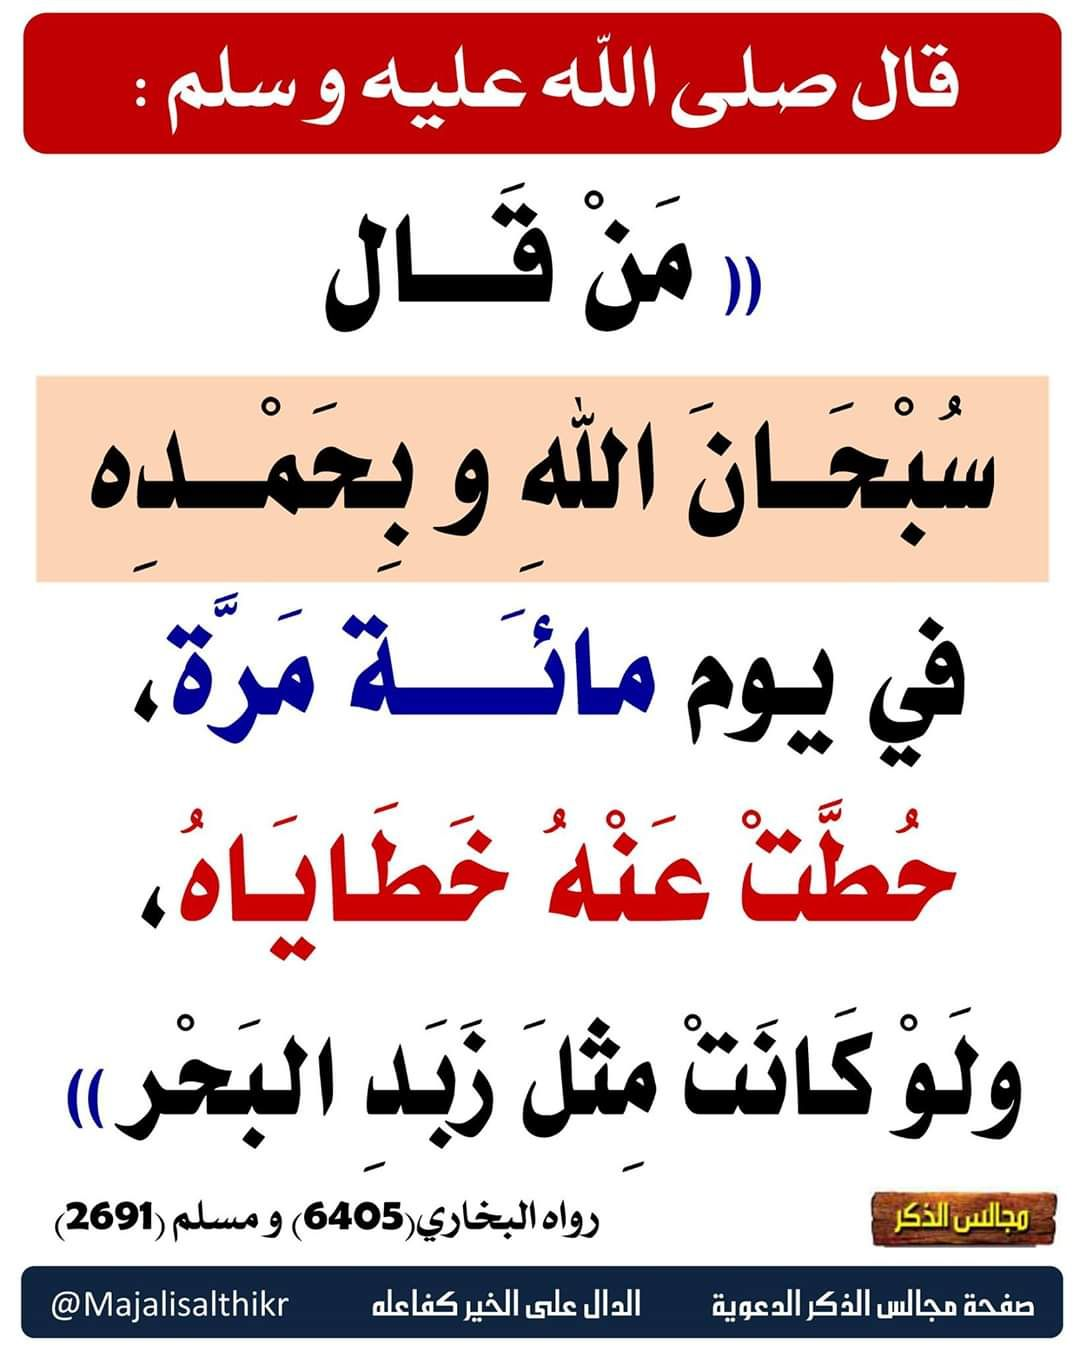 Pin By منوعات مفيدة On إسلاميات In 2020 Islam Facts Quotes Ahadith